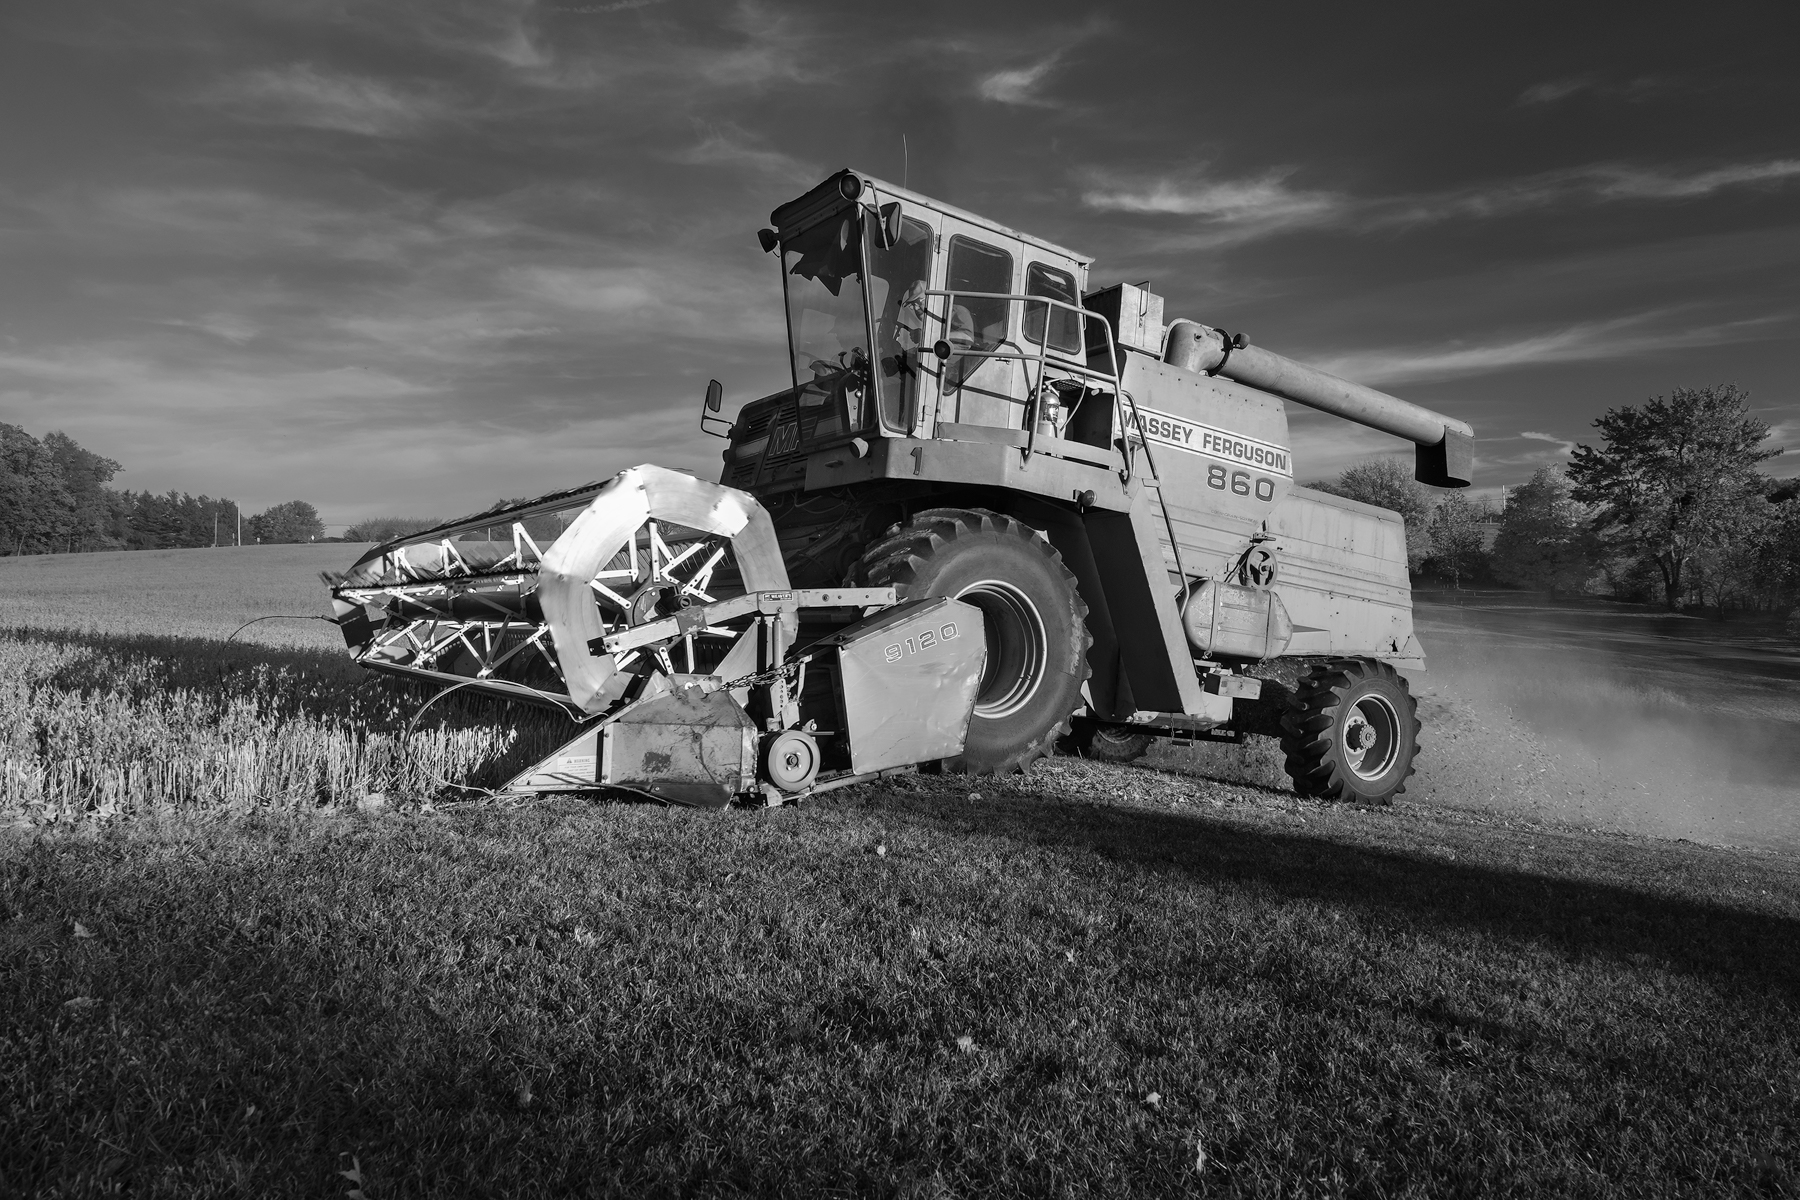 A big combine cuts along a new row. Fuji X-Pro 2 and a Fujinon XF16-55mm at 16mm. Image exposed at ISO 400 at f5.6 for 1/60 of a second.